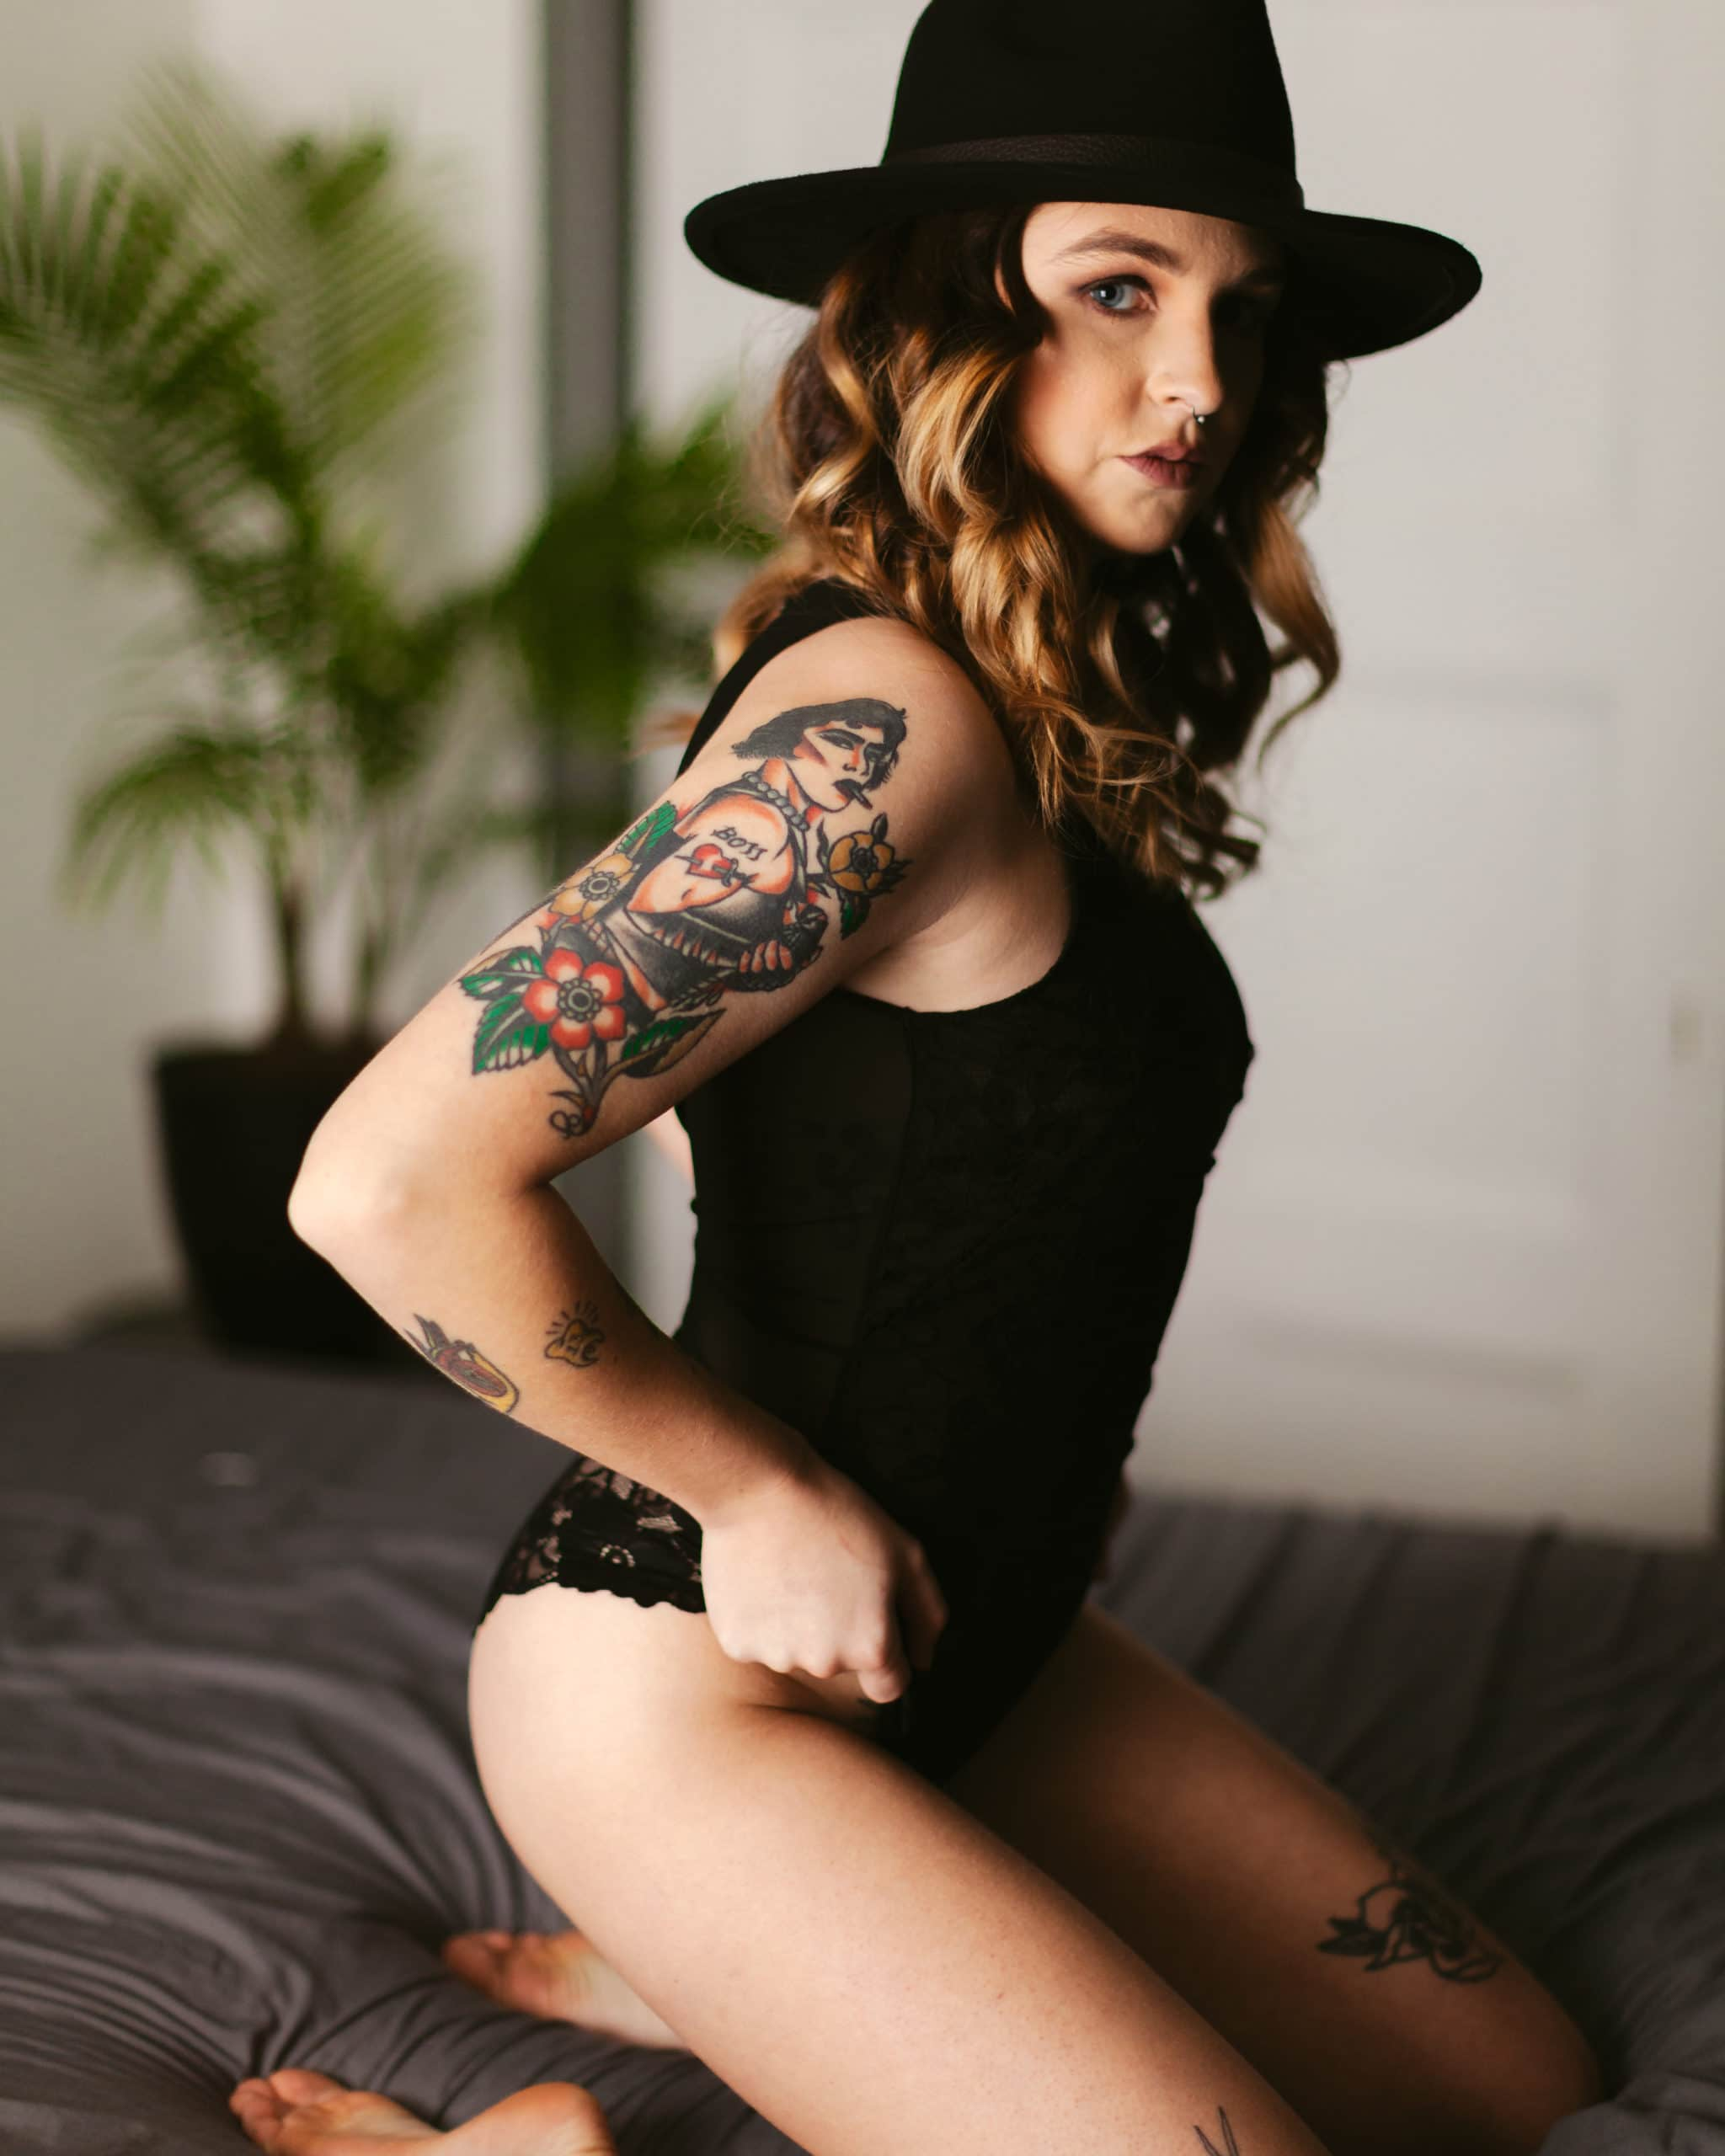 Woman wearing a bodysuit and hat